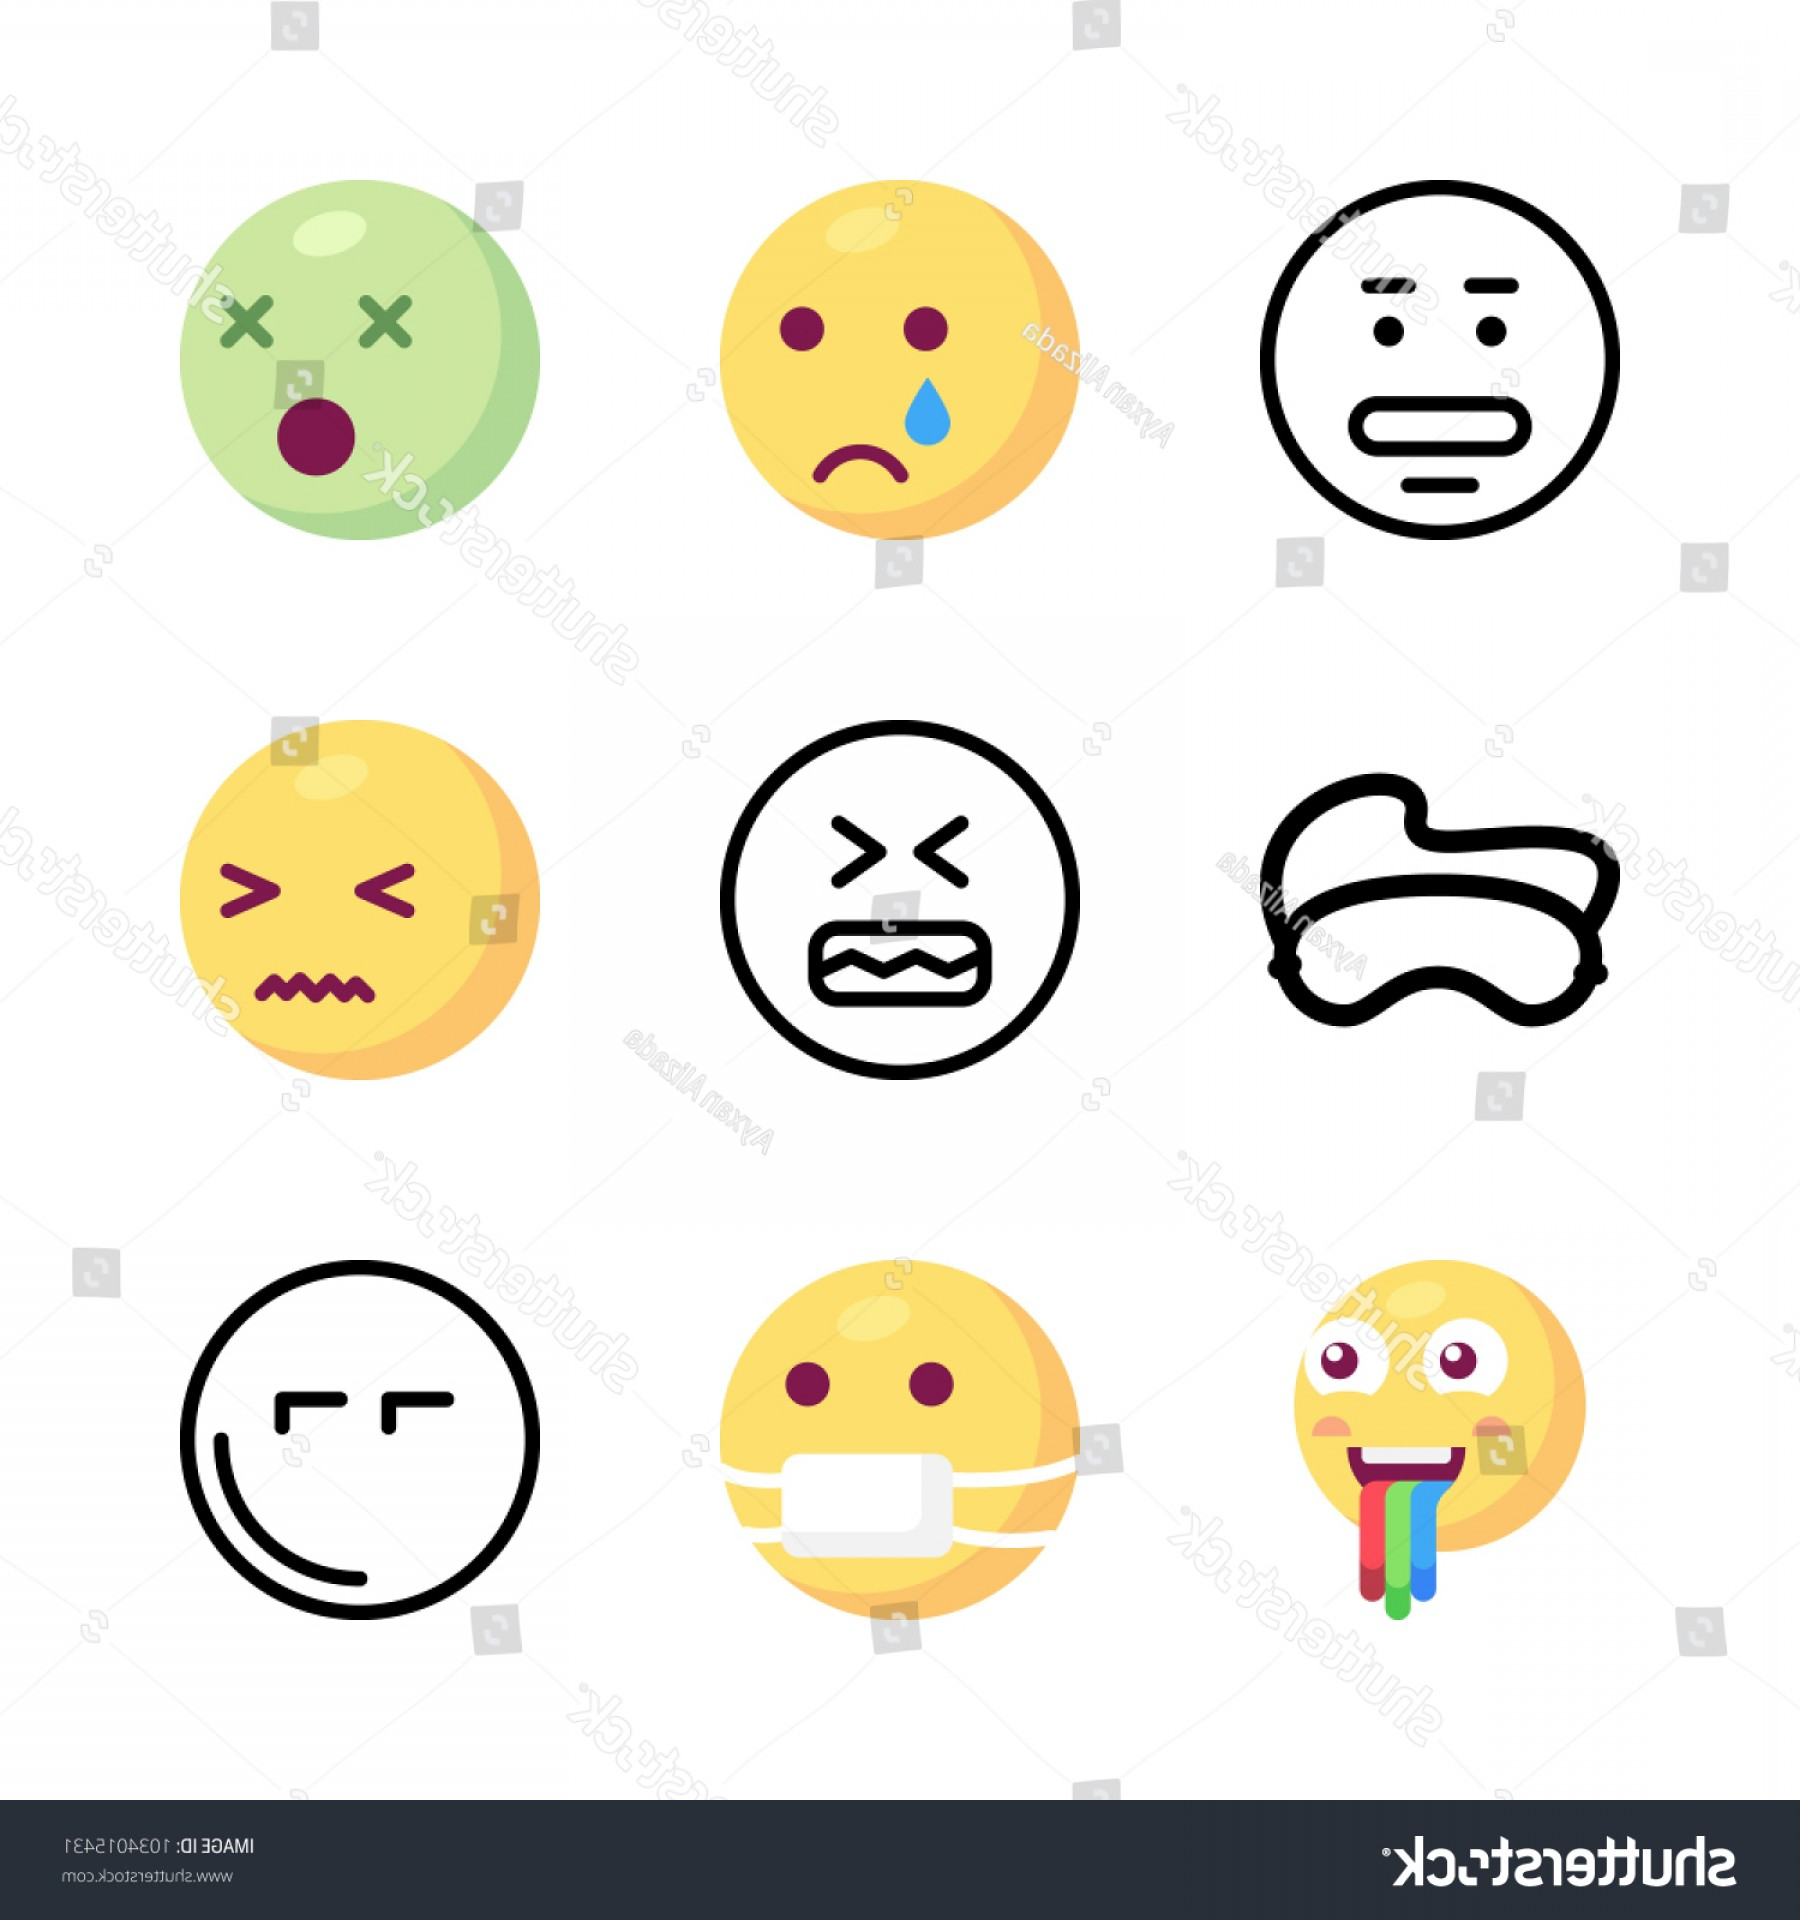 Angry Emoji Vector Icons: Icons Emoji Vector Angry Mask Confused